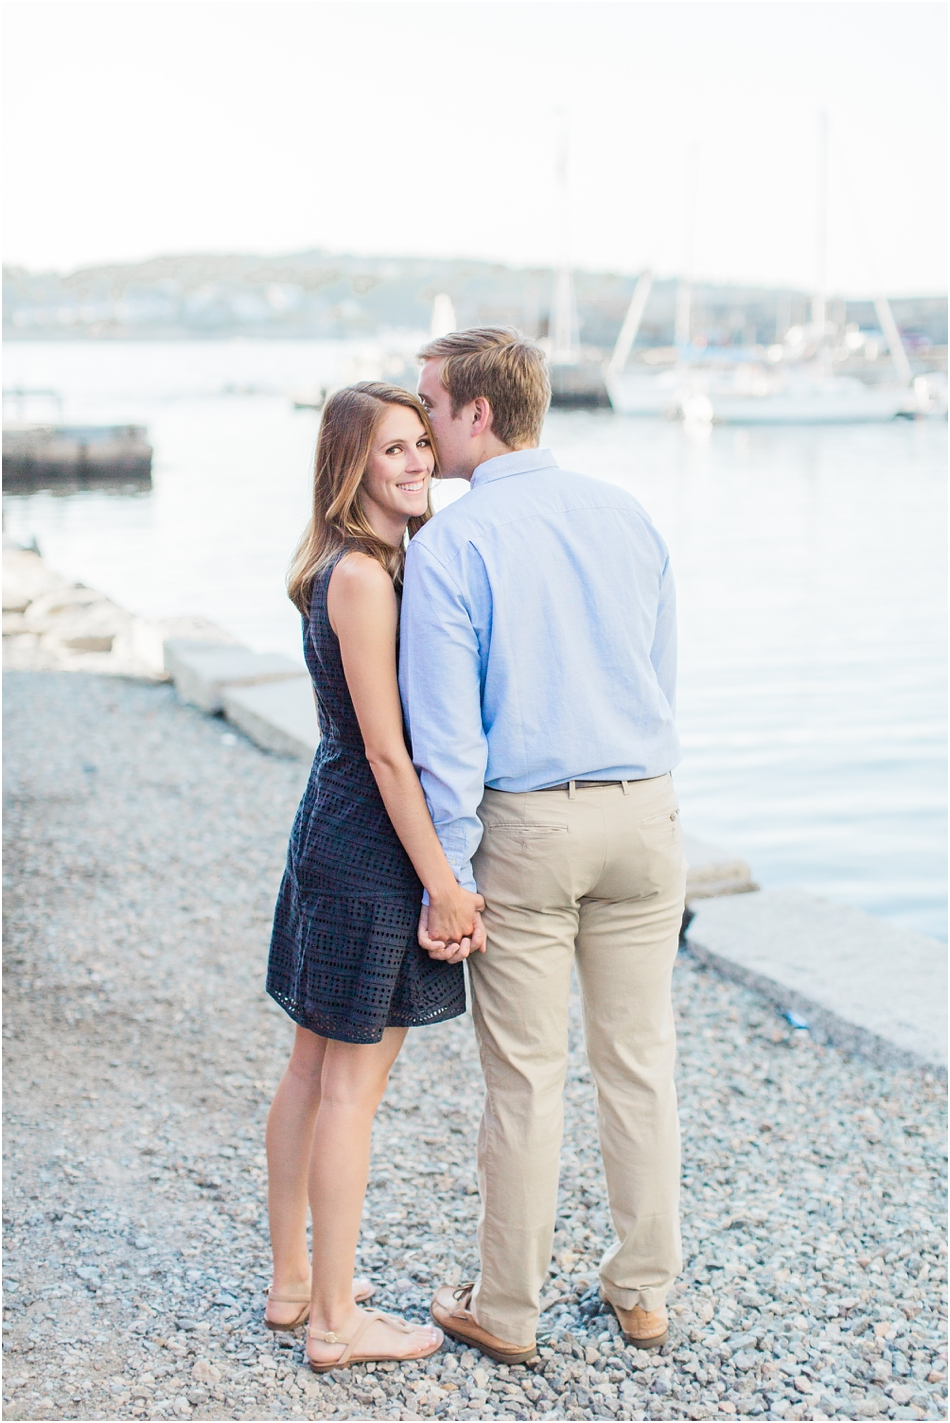 rockport_ma_engagement_kelly_zach_cape_cod_boston_new_england_wedding_photographer_Meredith_Jane_Photography_photo_2310.jpg